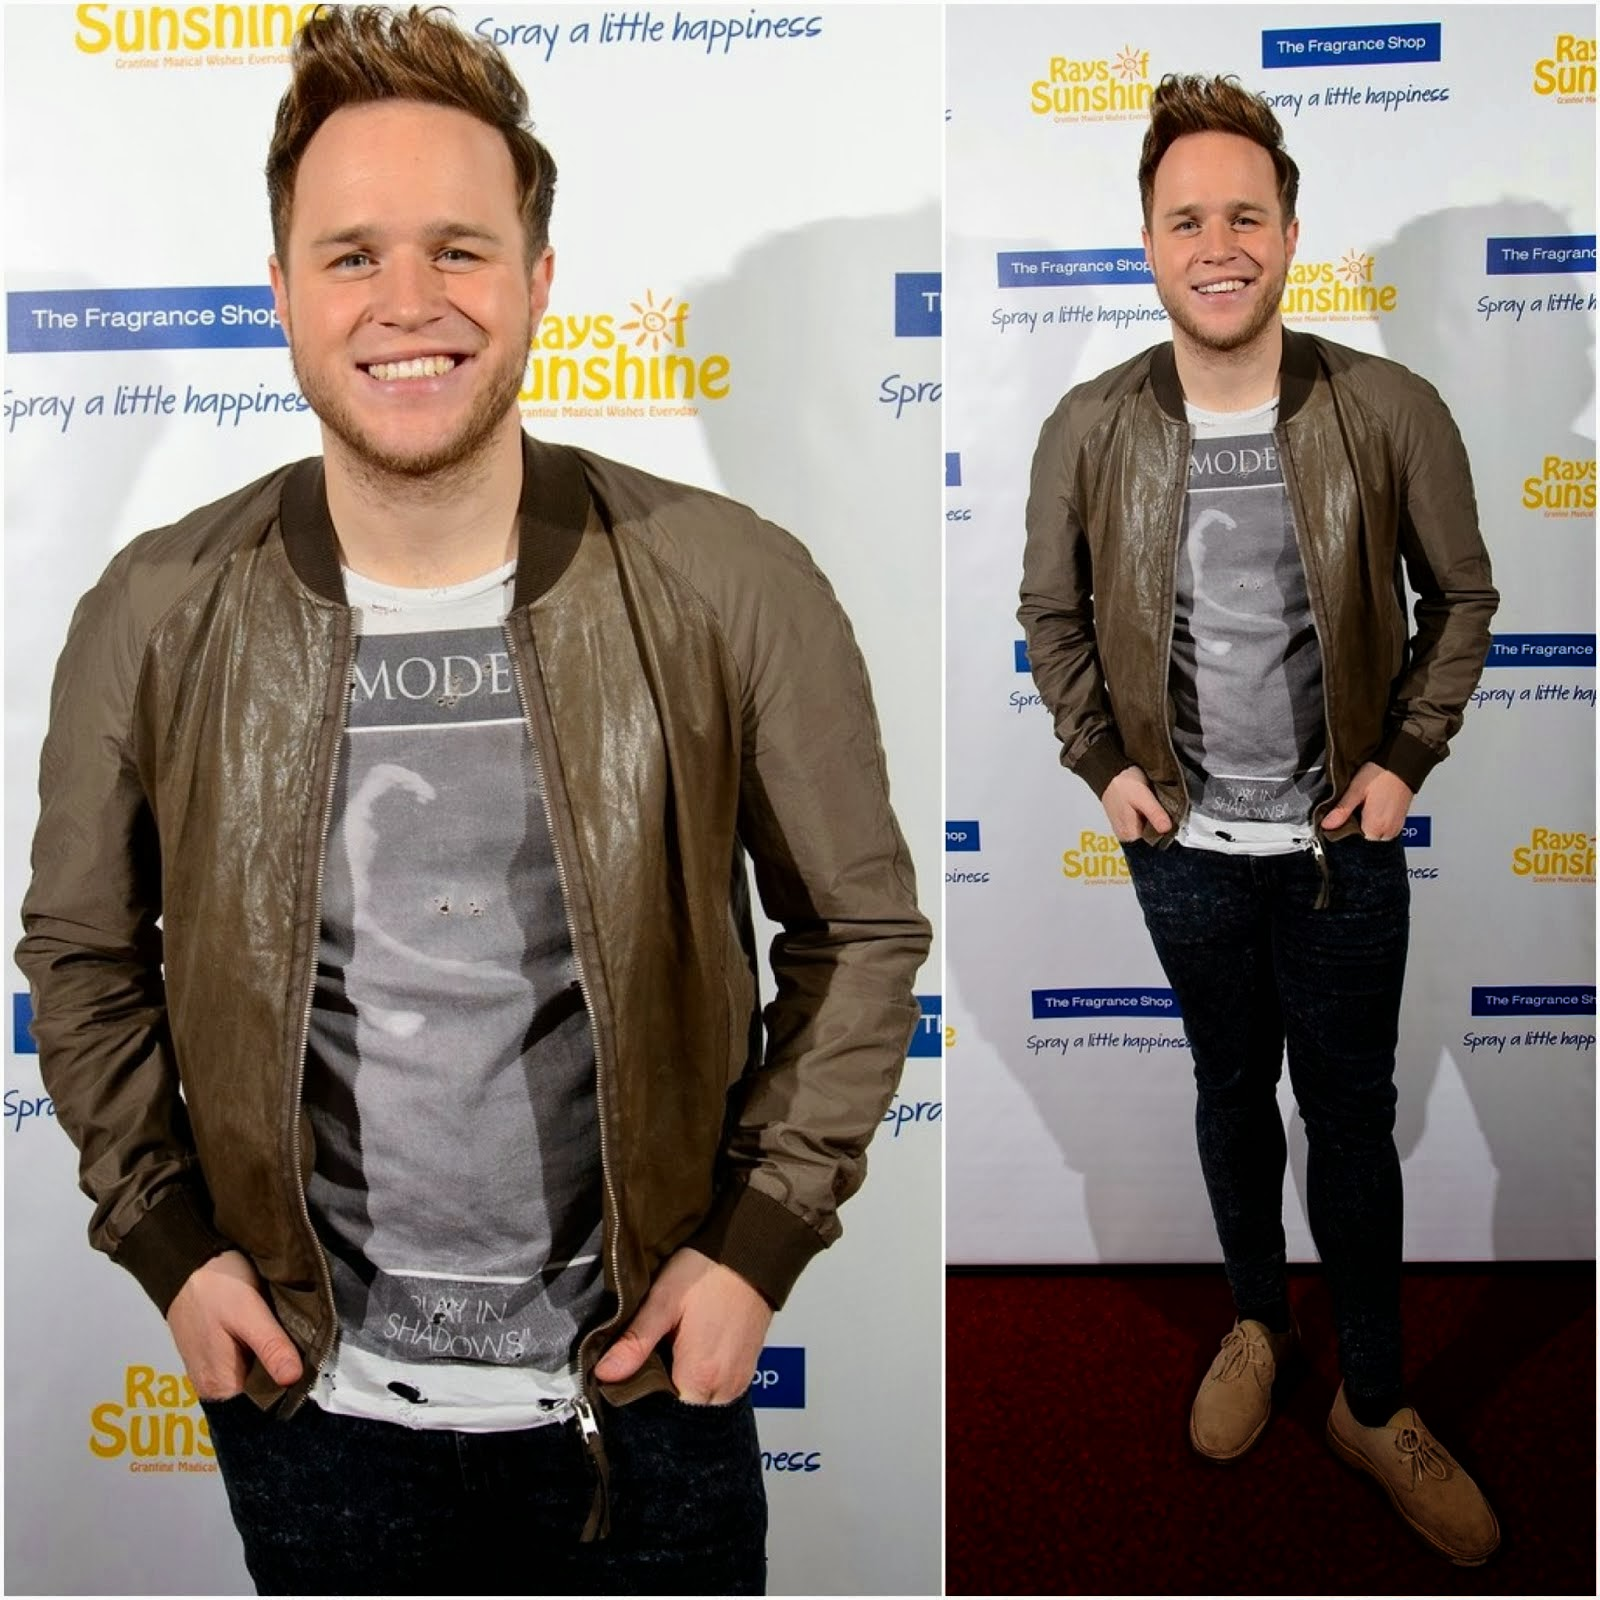 Olly Murs's All Saints White Mode T-Shirt - Rays of Sunshine Concert Launch